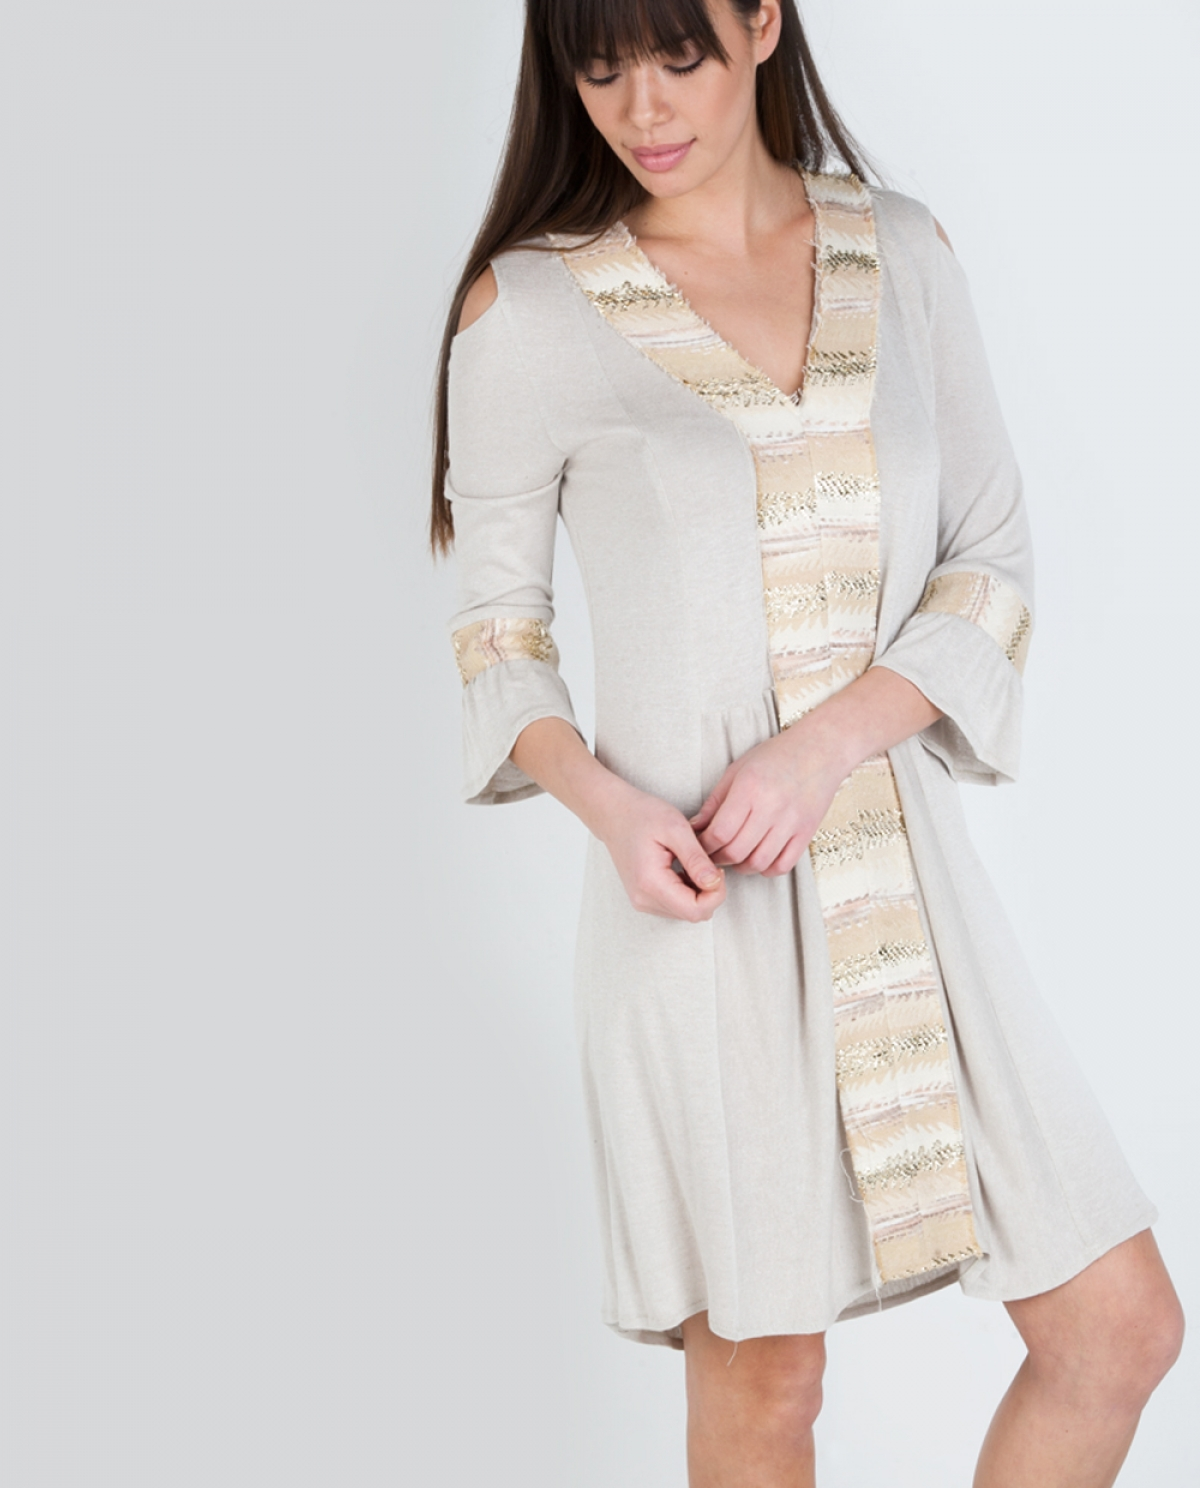 Give a Chance Beige Kaftan Dress